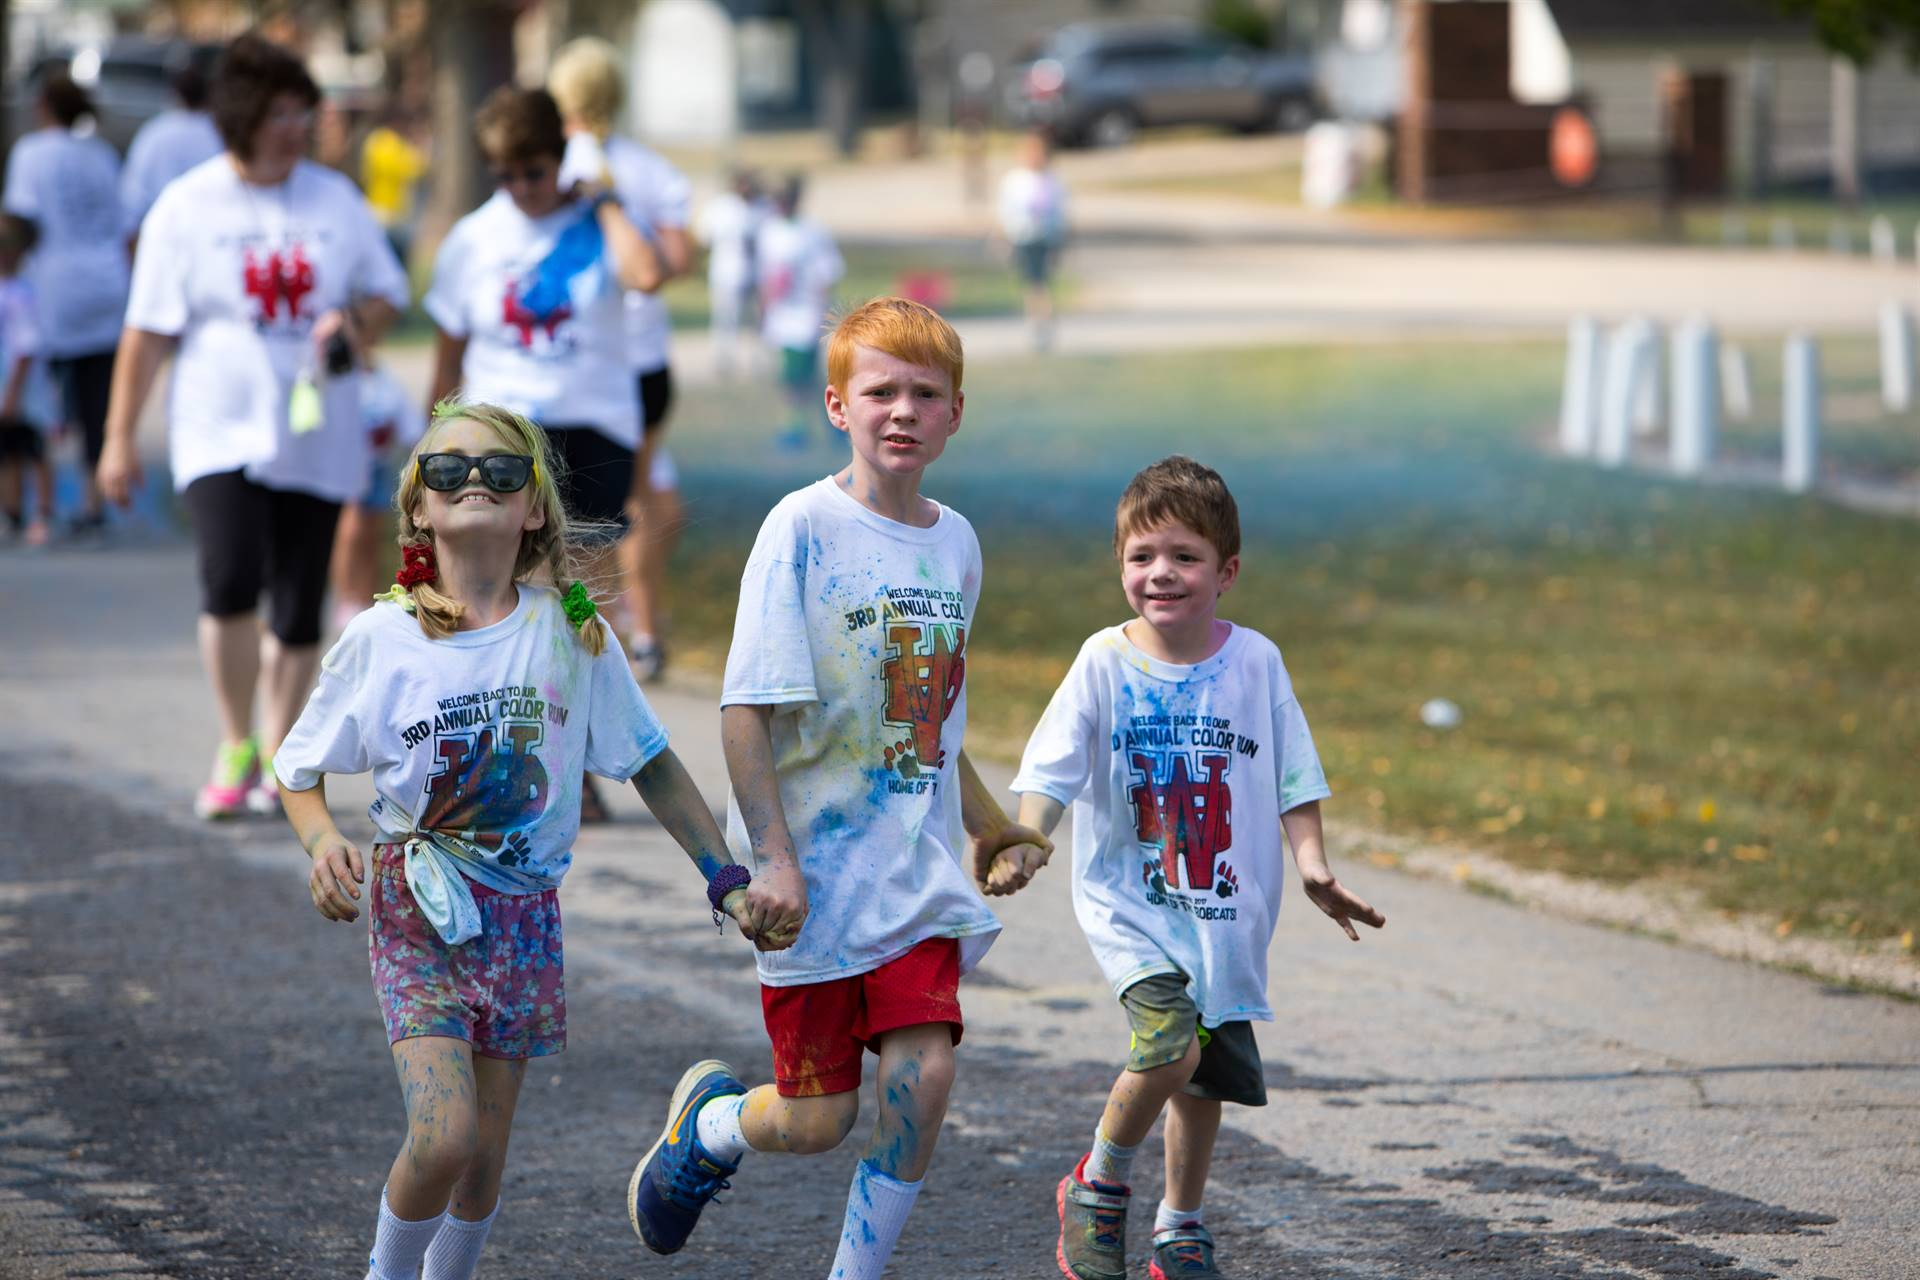 3 kids holding hands at color run